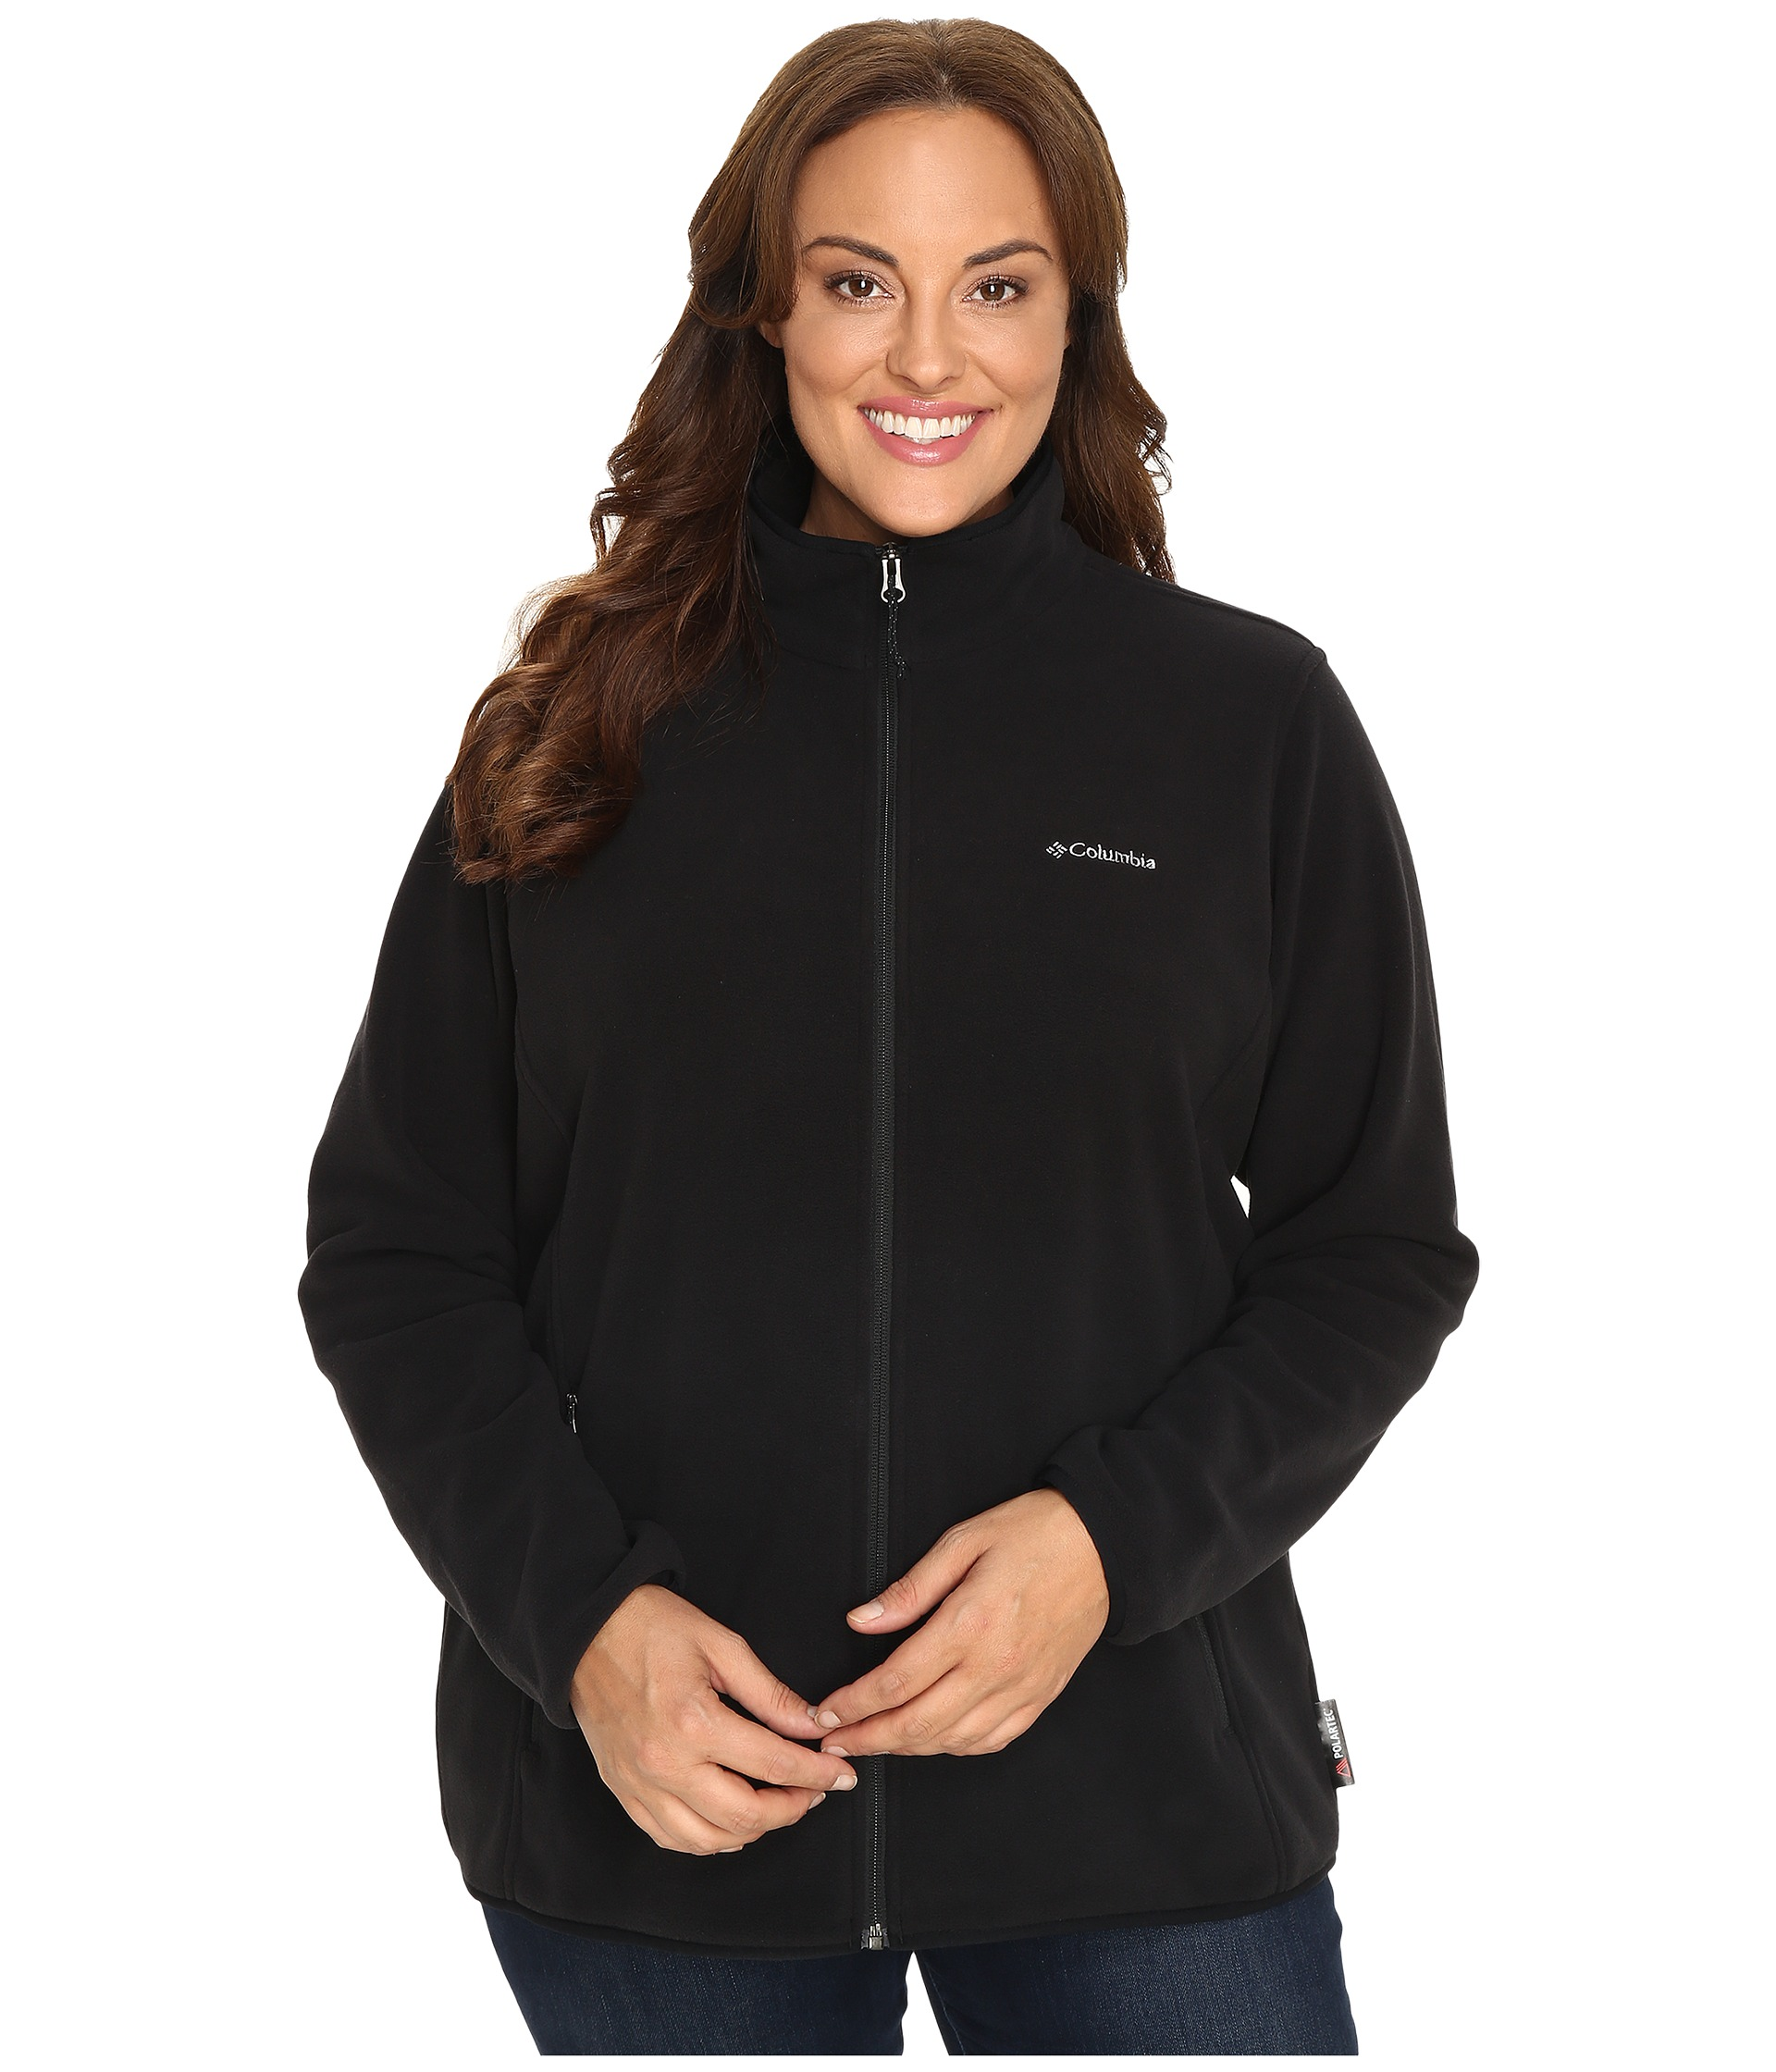 Buy Plus Size Womens Fleece Jackets at Macy's. Shop the Latest Plus Size Fleece Jackets for Women Online at specialisedsteels.tk FREE SHIPPING AVAILABLE! Macy's Presents: The Edit - A curated mix of fashion and inspiration Check It Out.